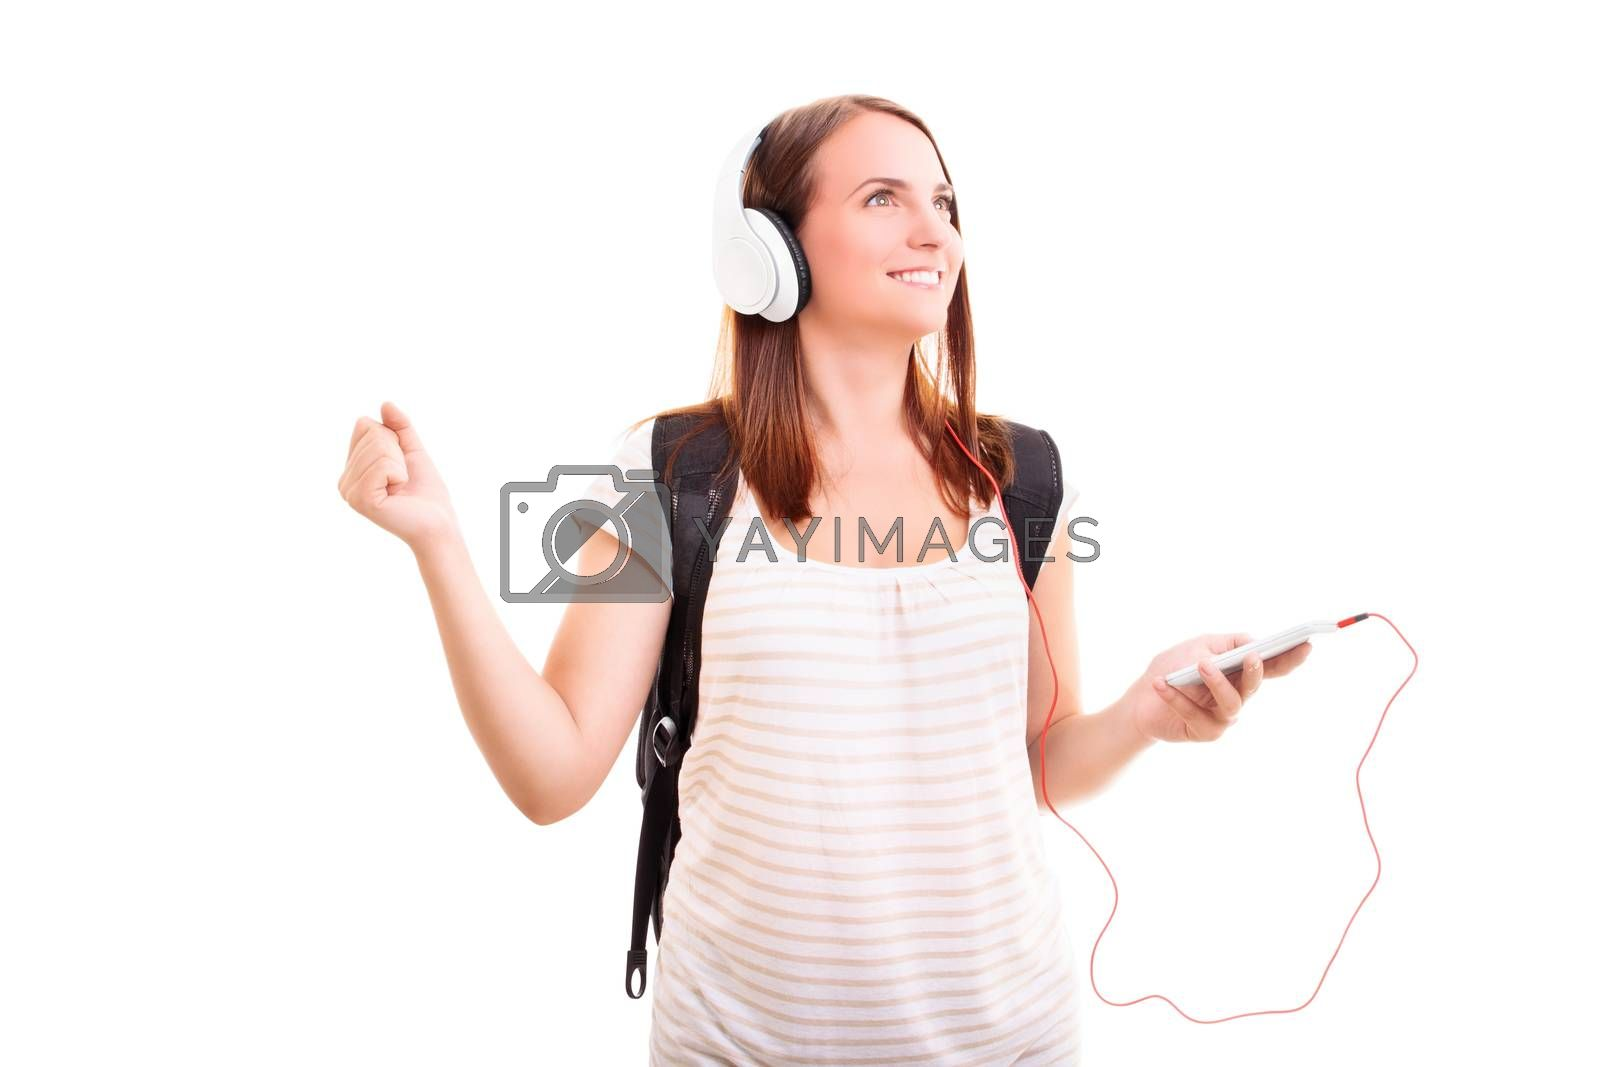 Beautiful smiling blond young girl with headphones listening to music, isolated on white background. Music and sound concept.